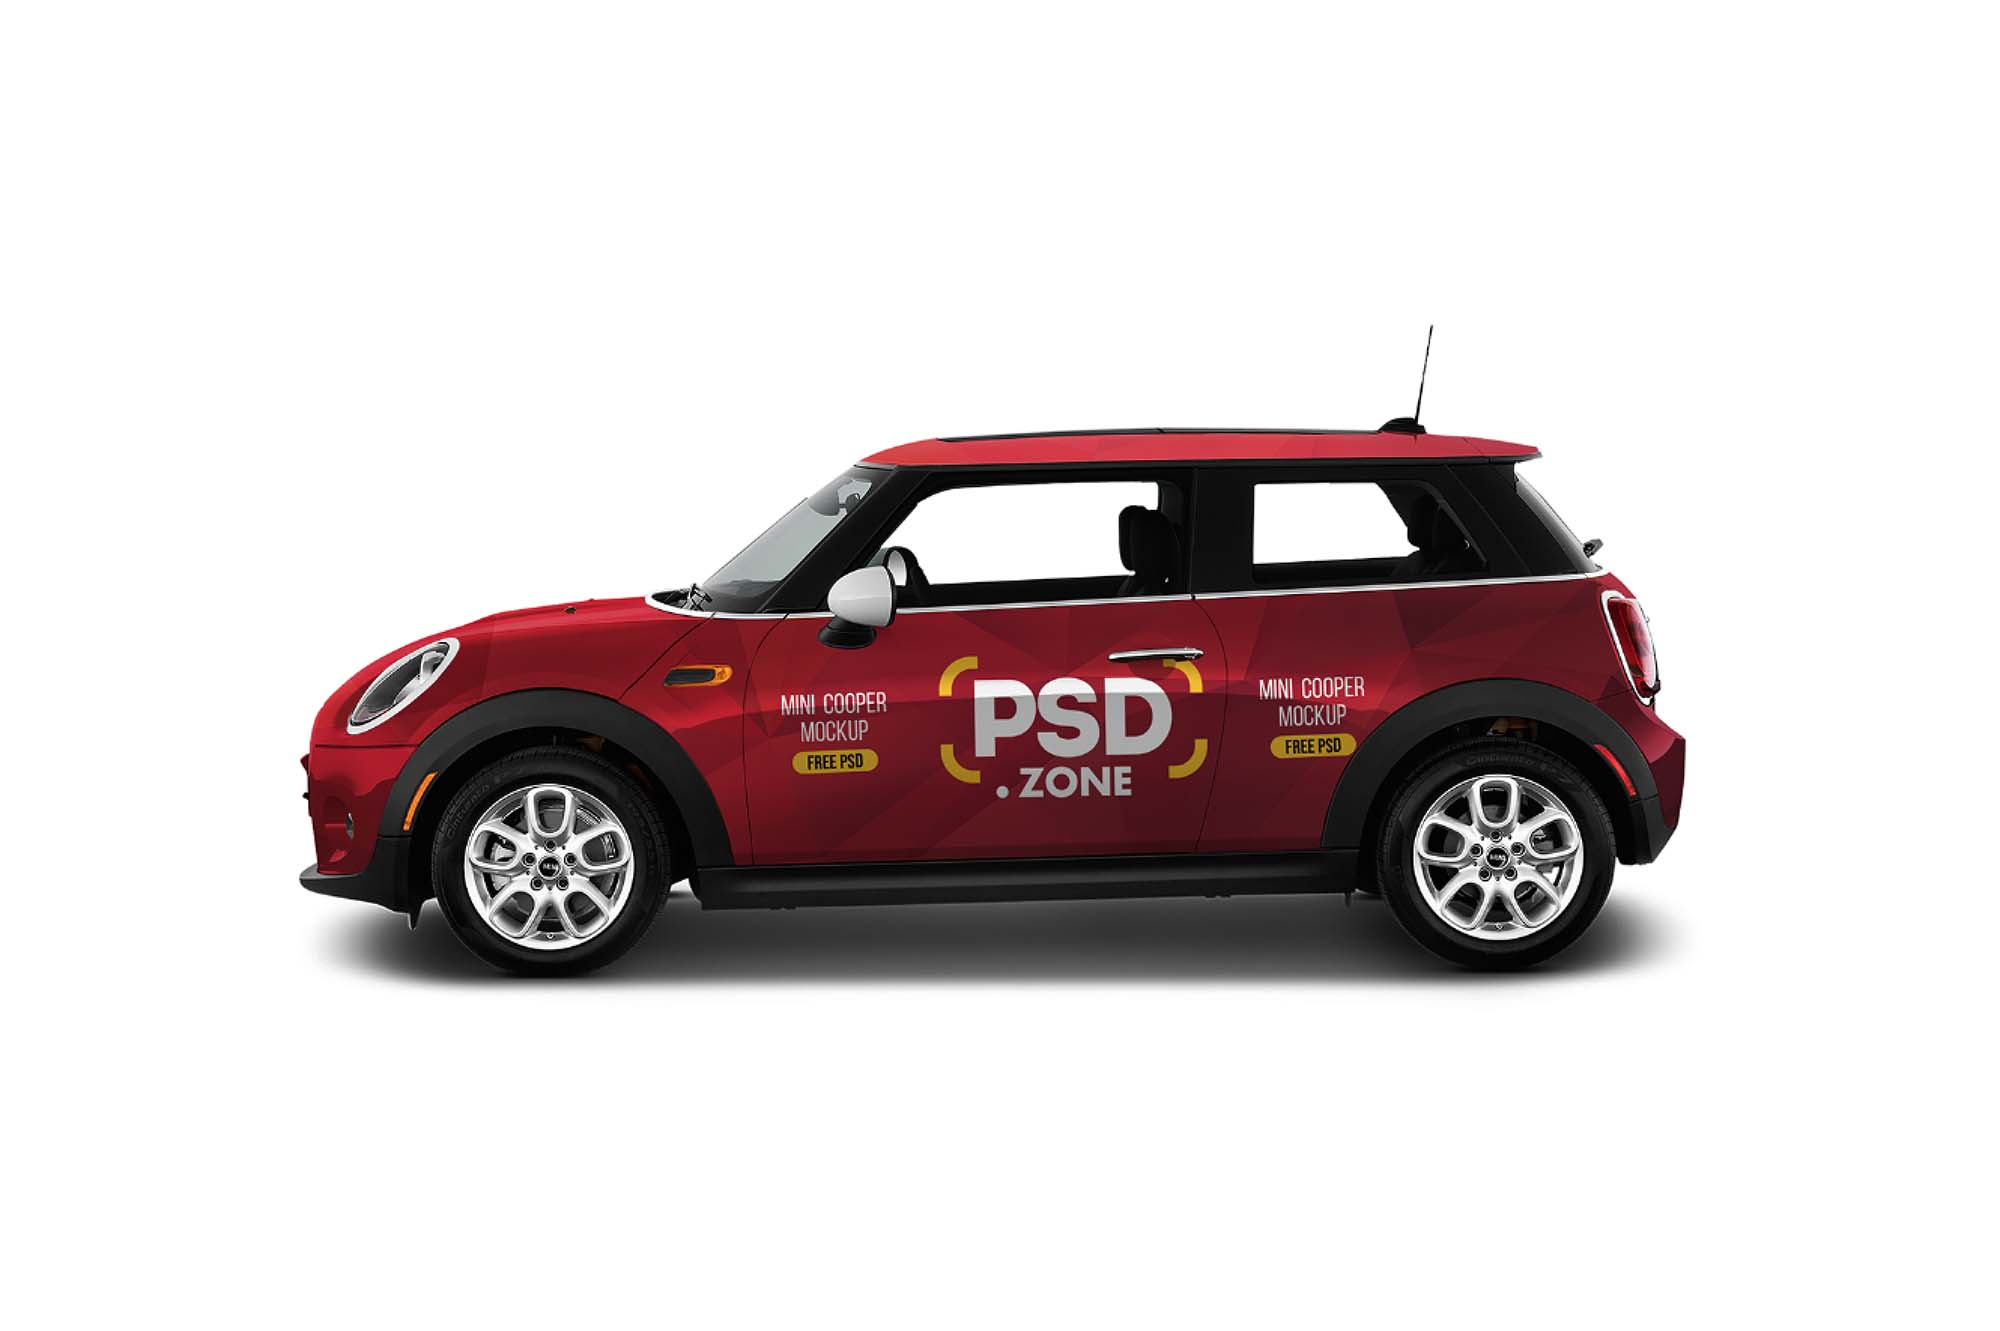 Free mini cooper car mockup psd